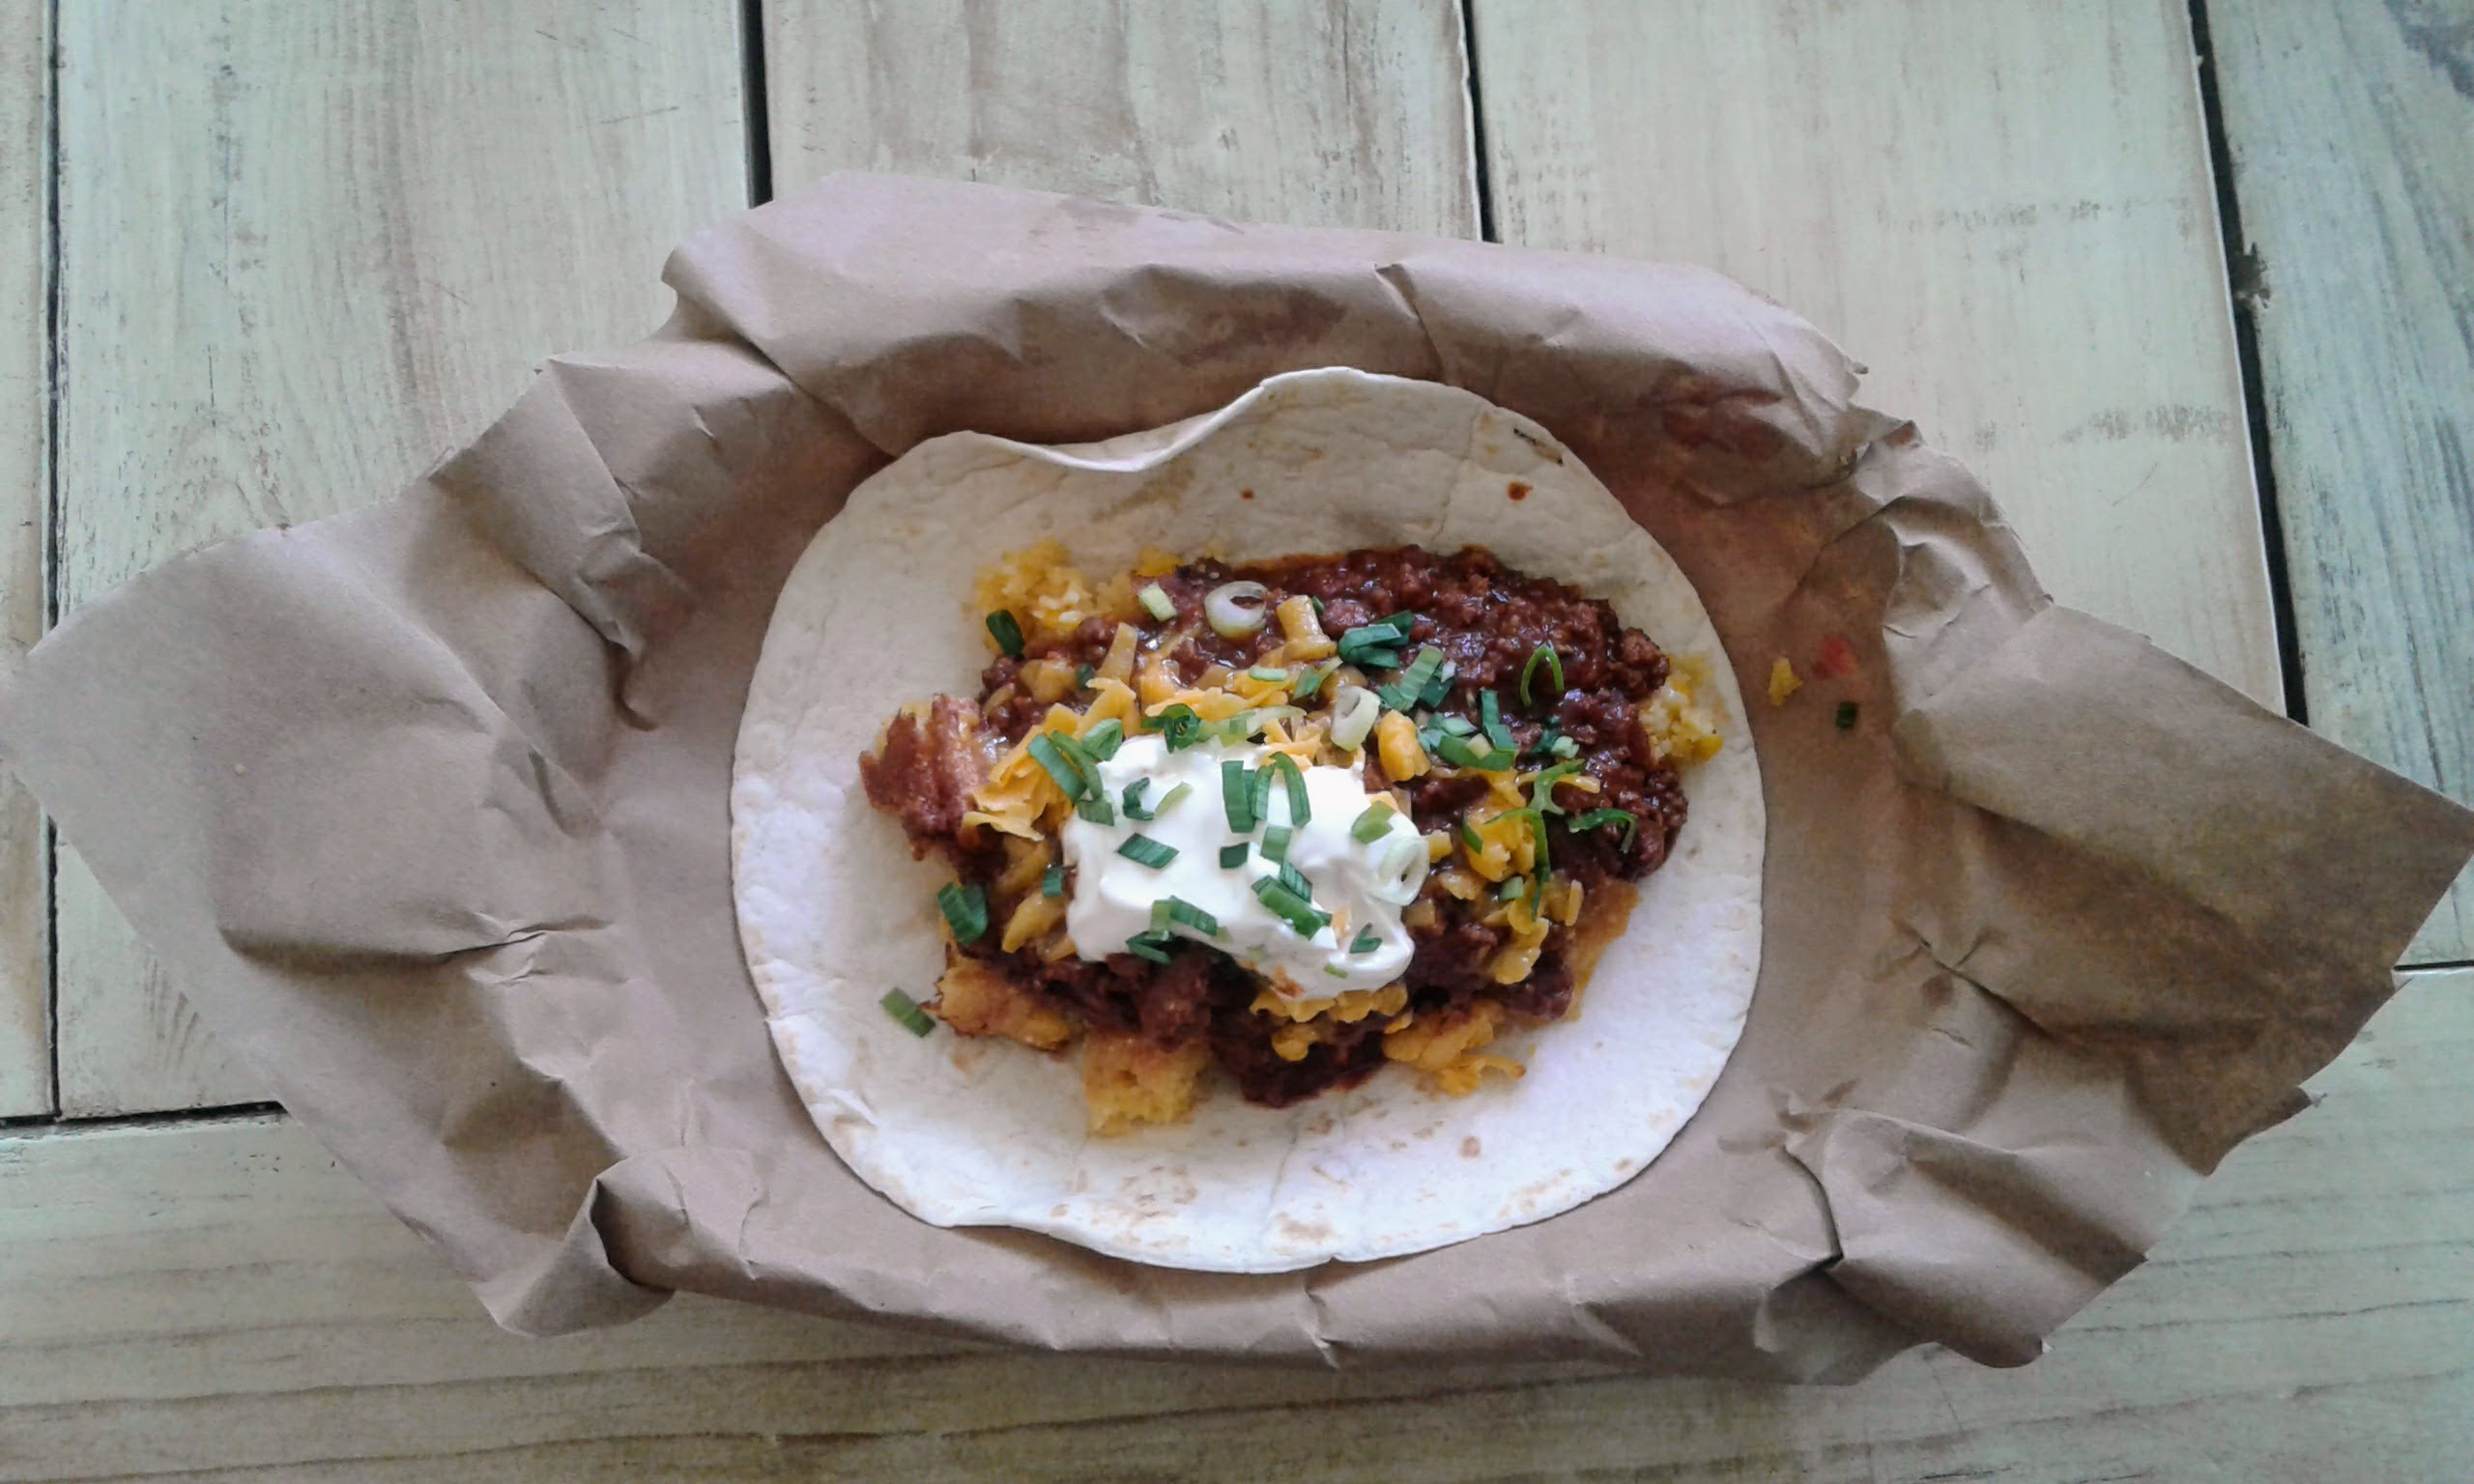 The Texan Taco with Chili, Jalapeno Cheese Corn Bread, Cheddar Cheese, Sour Cream and Green Onions